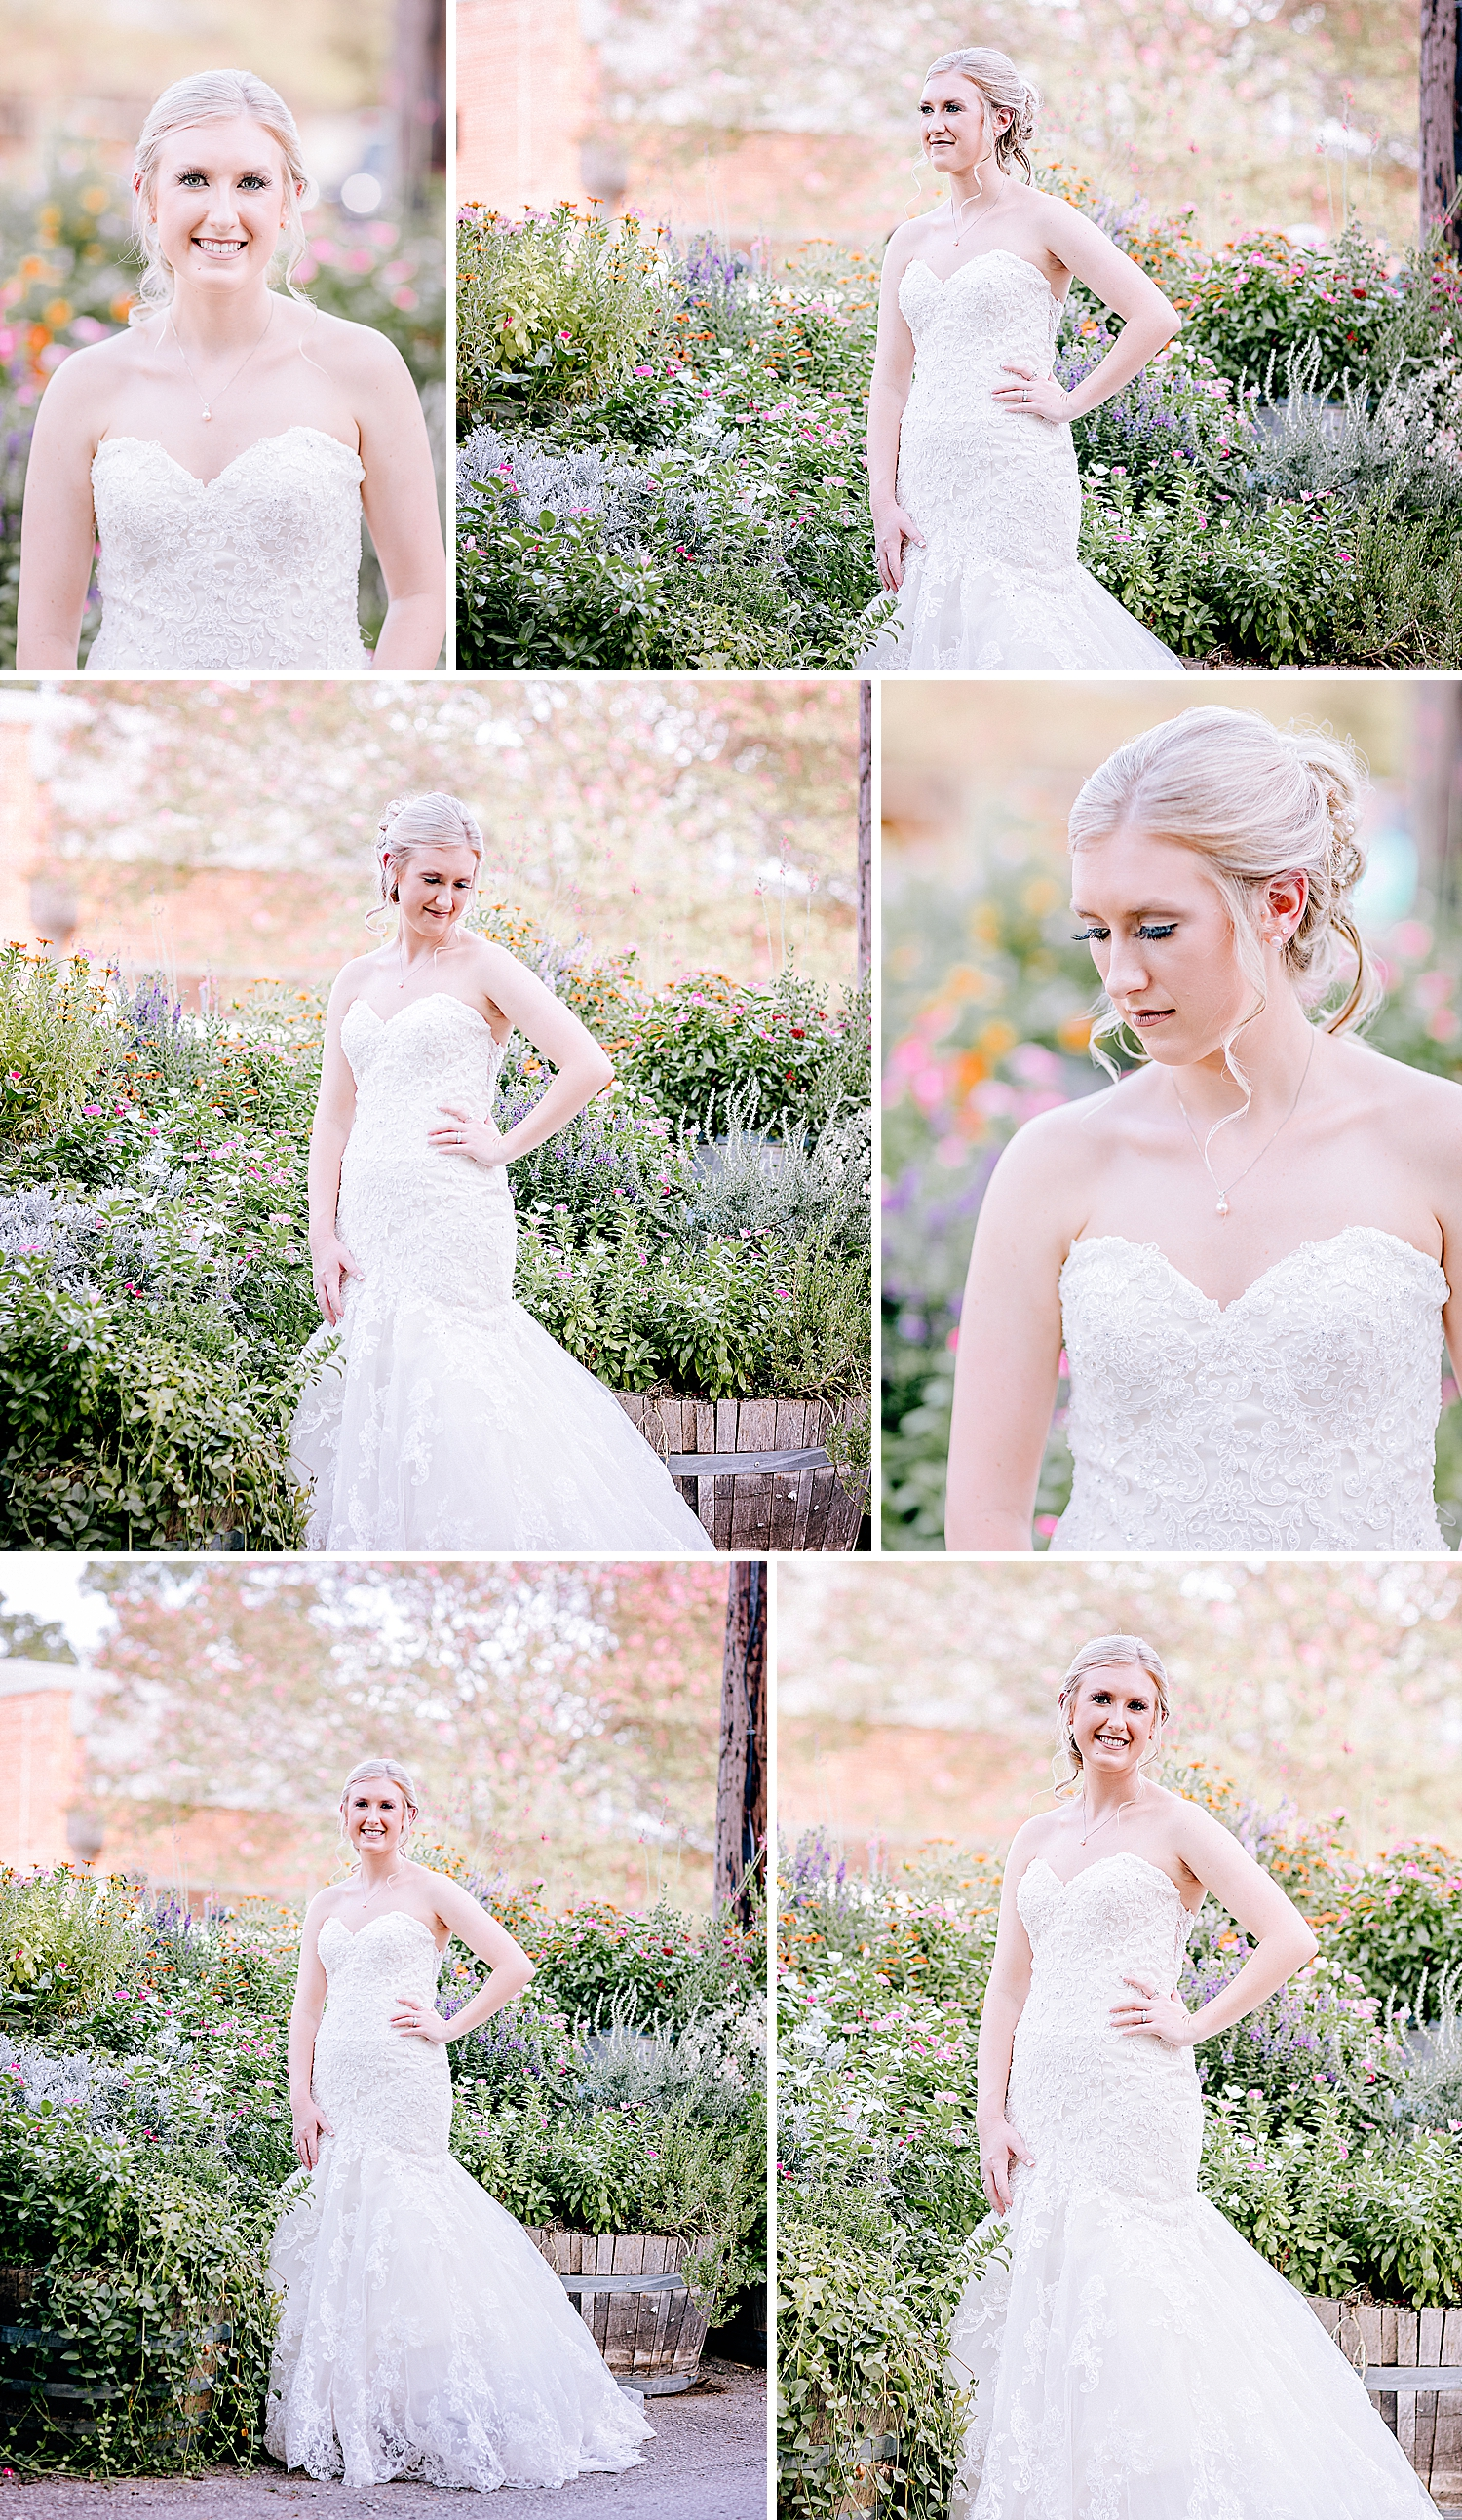 Carly-Barton-Photography-Bridal-Photos-Gruene-Rustic-New-Braunfels-Wedding-Photographer_0020.jpg